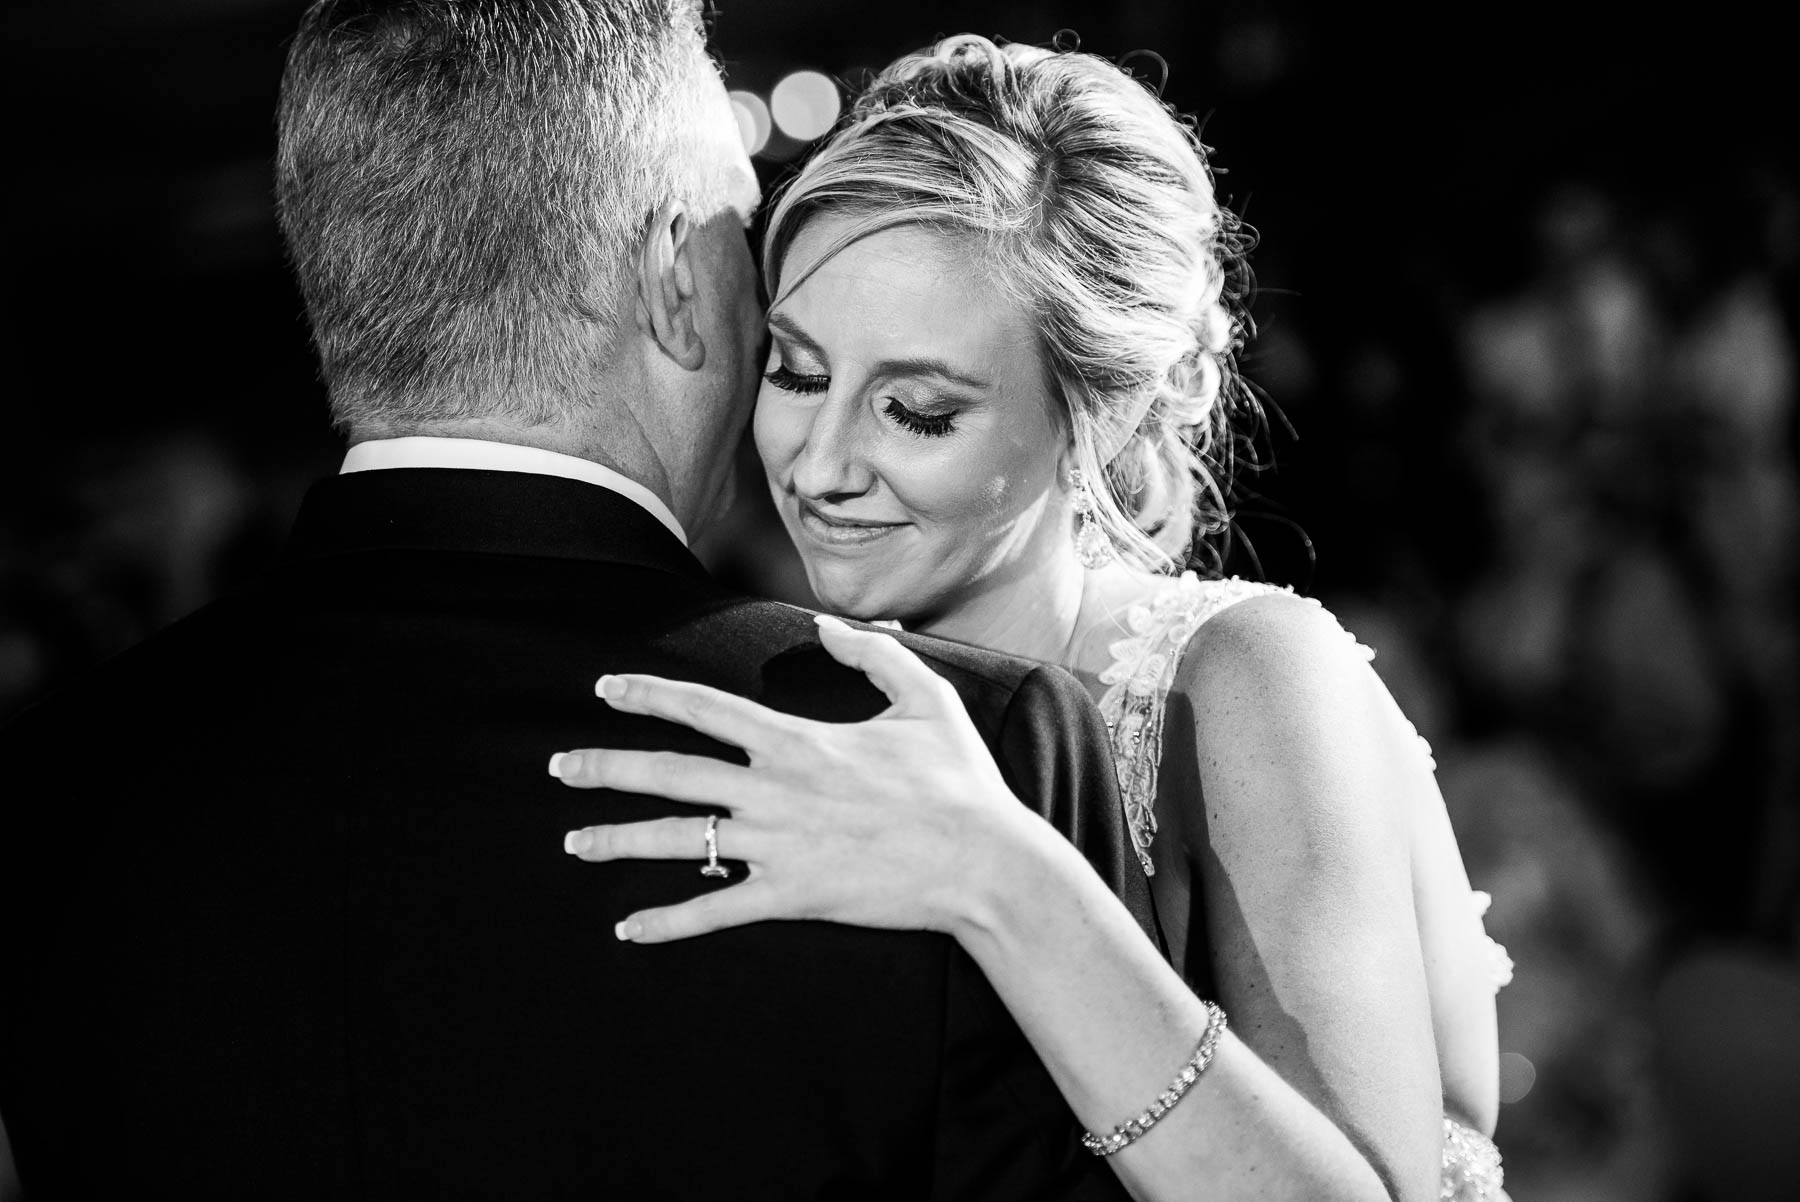 Bride hugs her father during their dance at a St. Charles Country Club wedding.